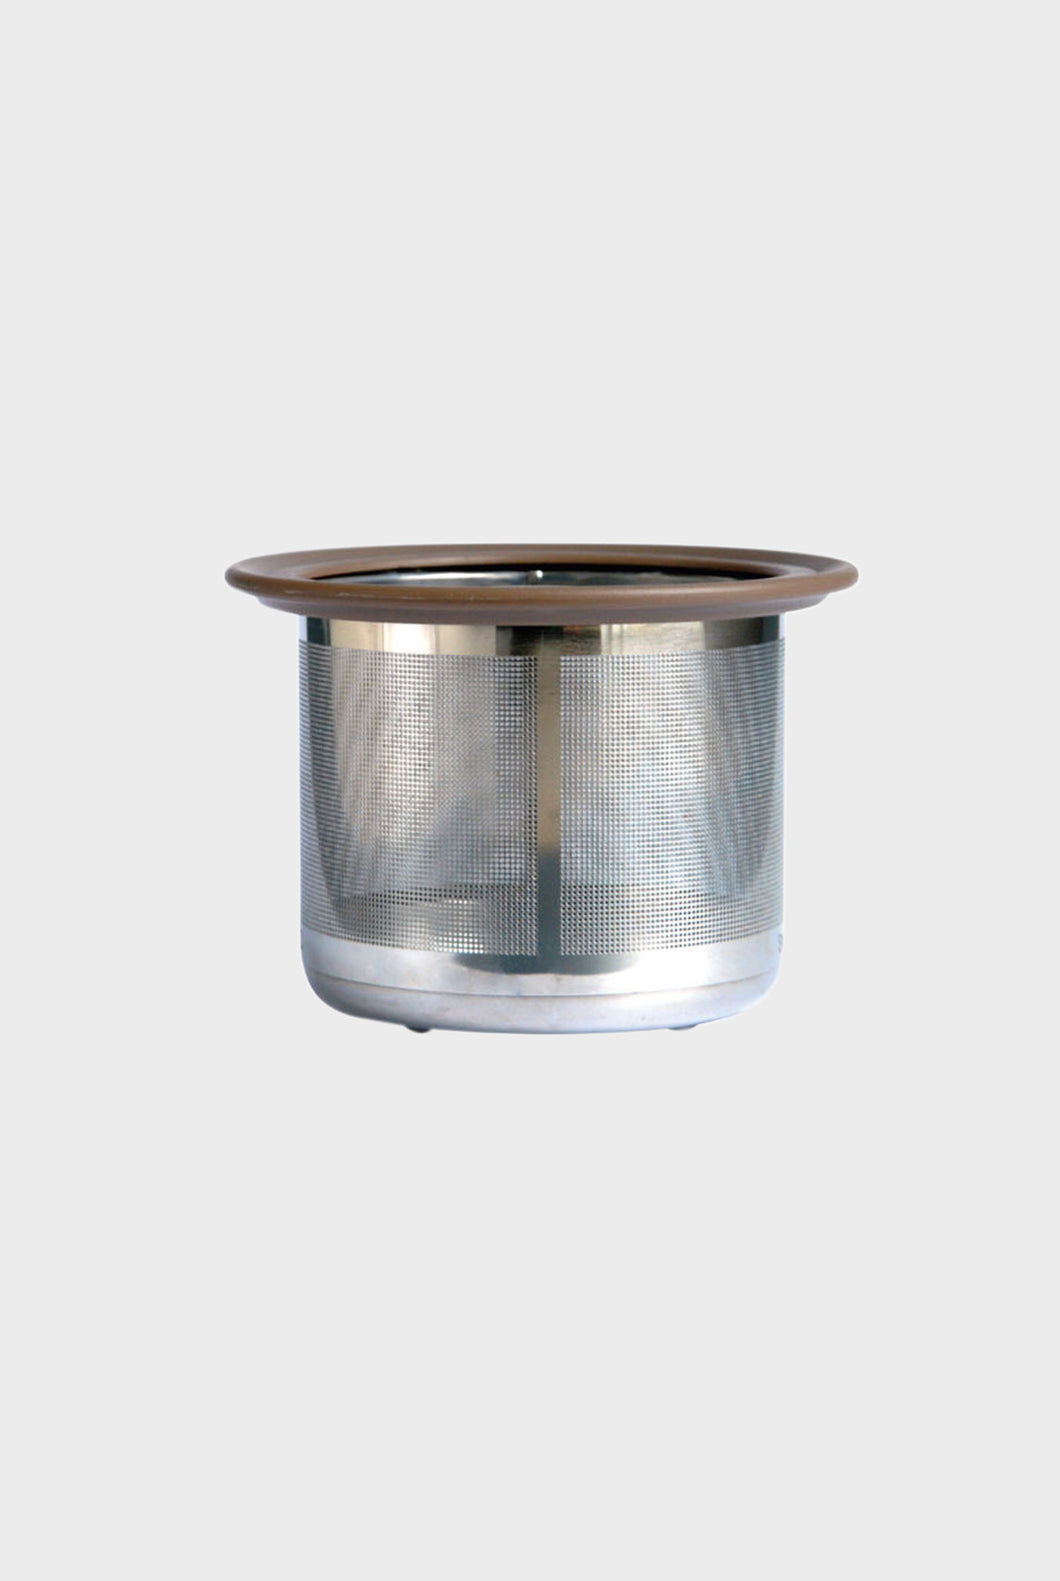 Kinto - Brim Replacement Strainer - 750ml